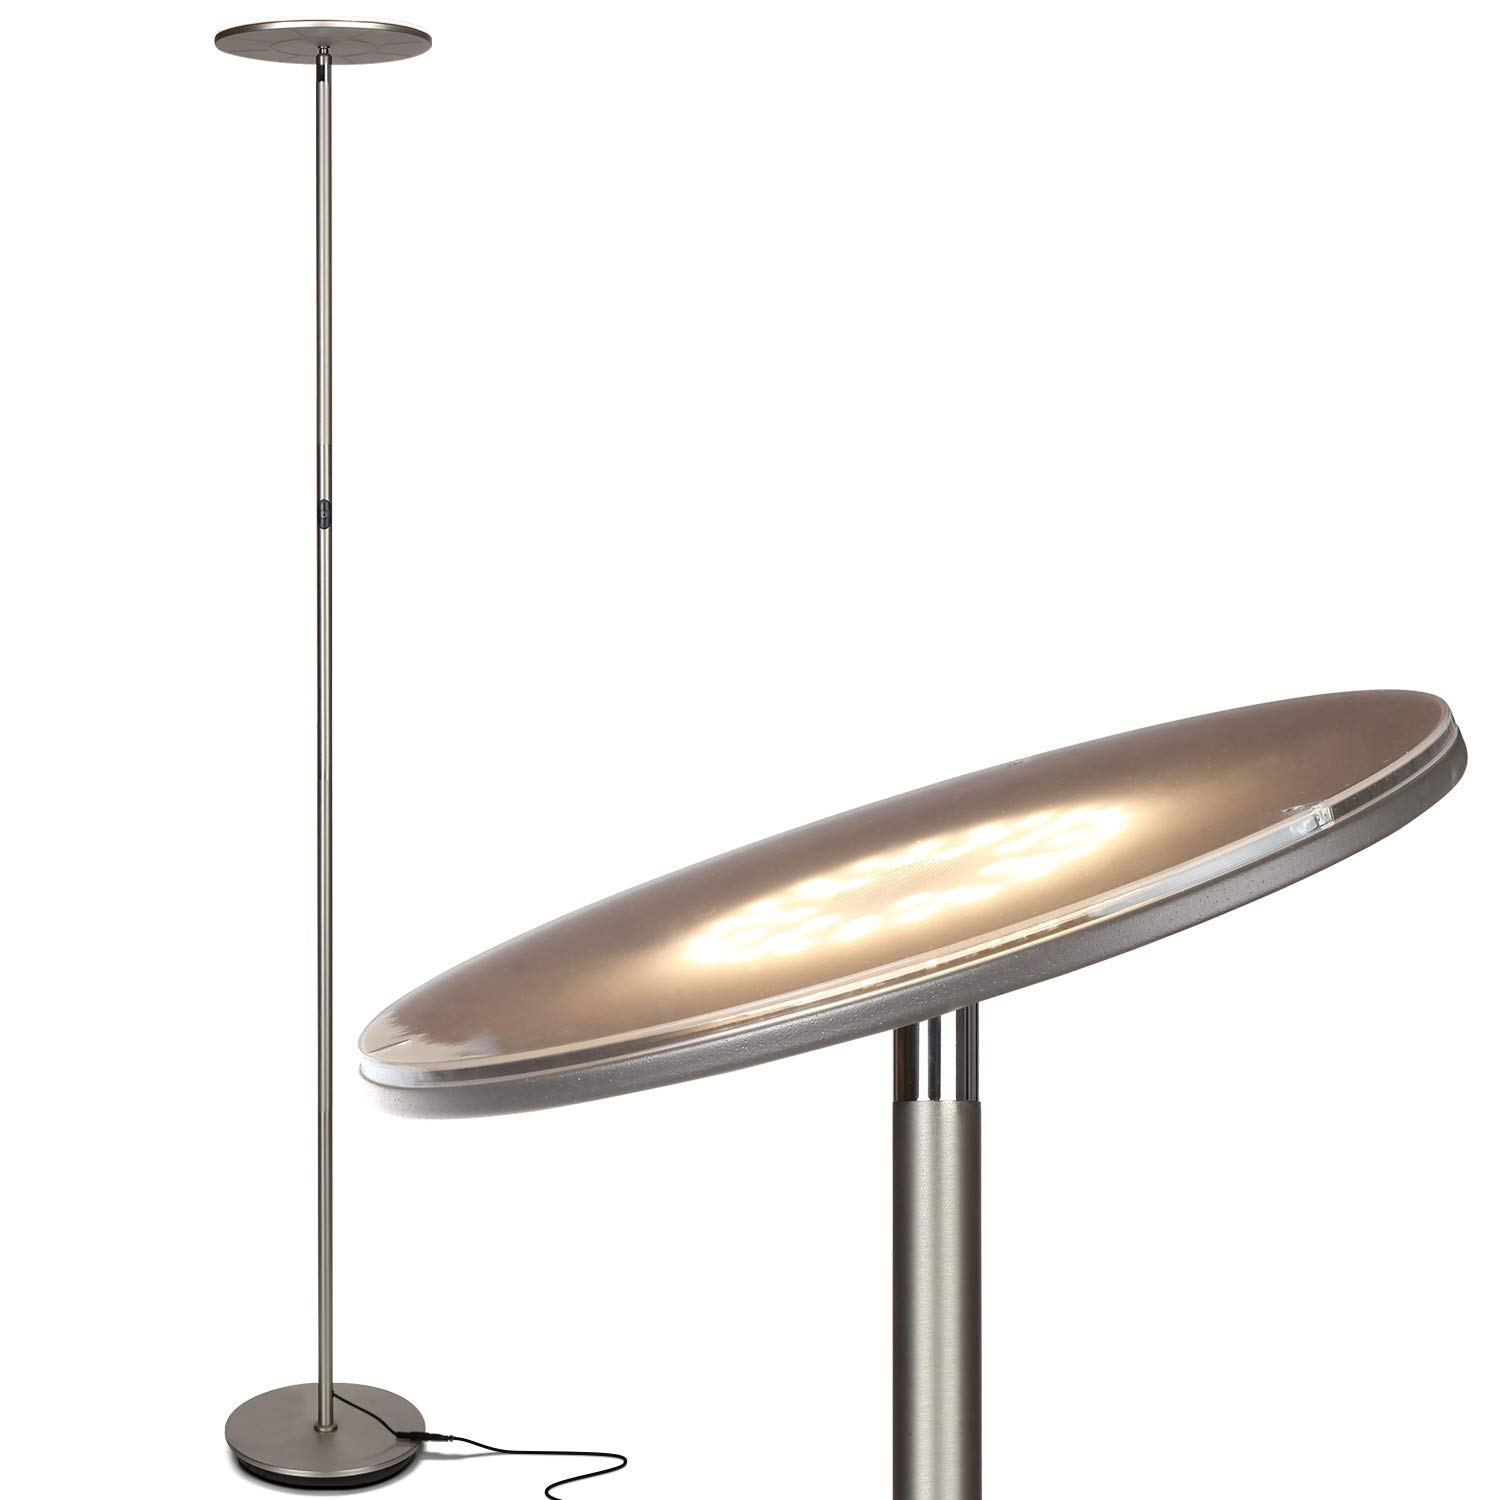 Brightech Sky LED Torchiere Super Bright Floor Lamp - Tall Standing Modern Pole Light for Living Rooms & Offices - Dimmable Uplight for Reading Books in Your Bedroom etc - Brushed Nickel